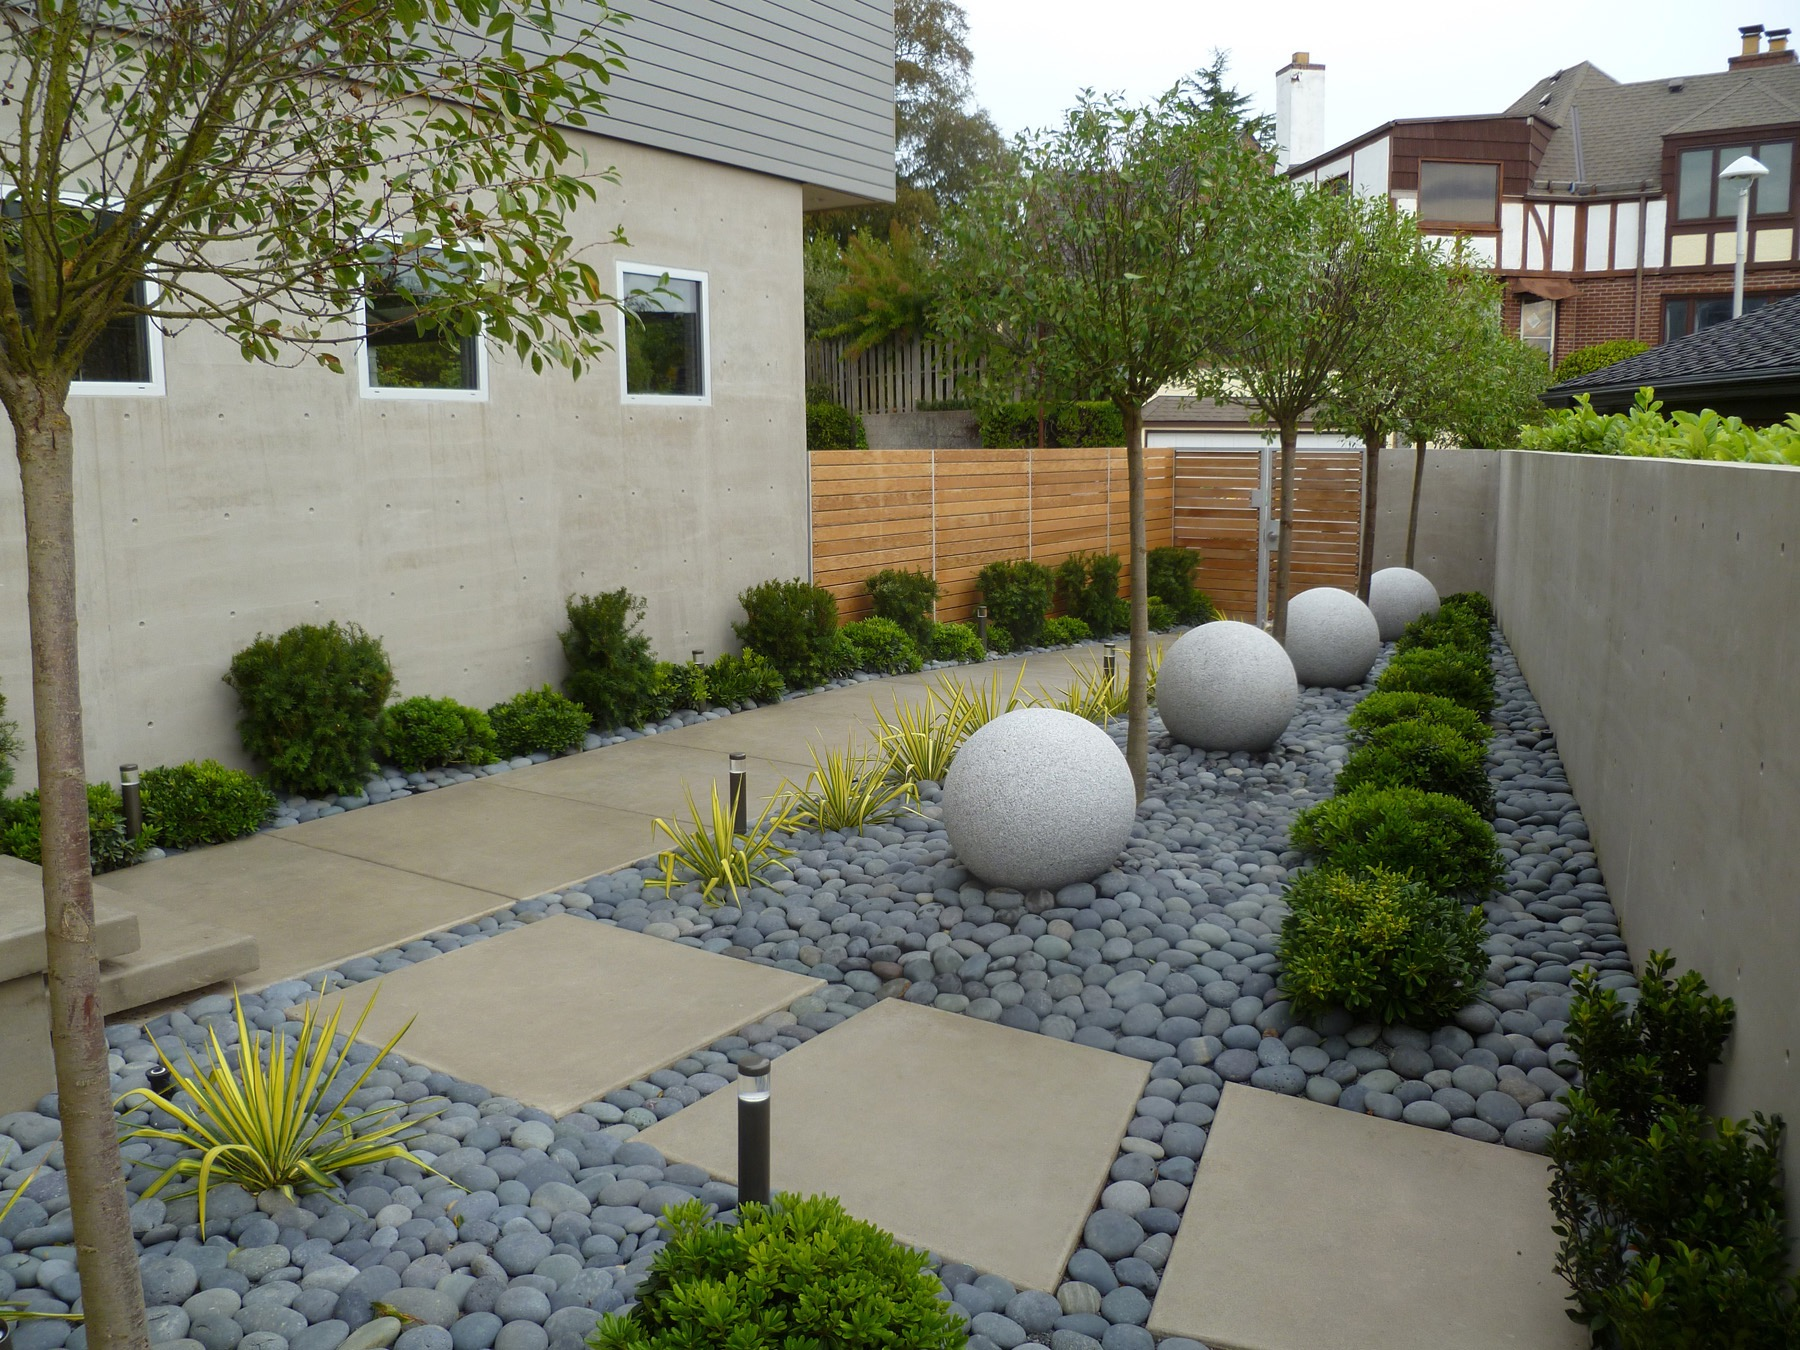 Japanese Garden In Modern Design With River Rock And Granite Orbs (Image 3 of 10)